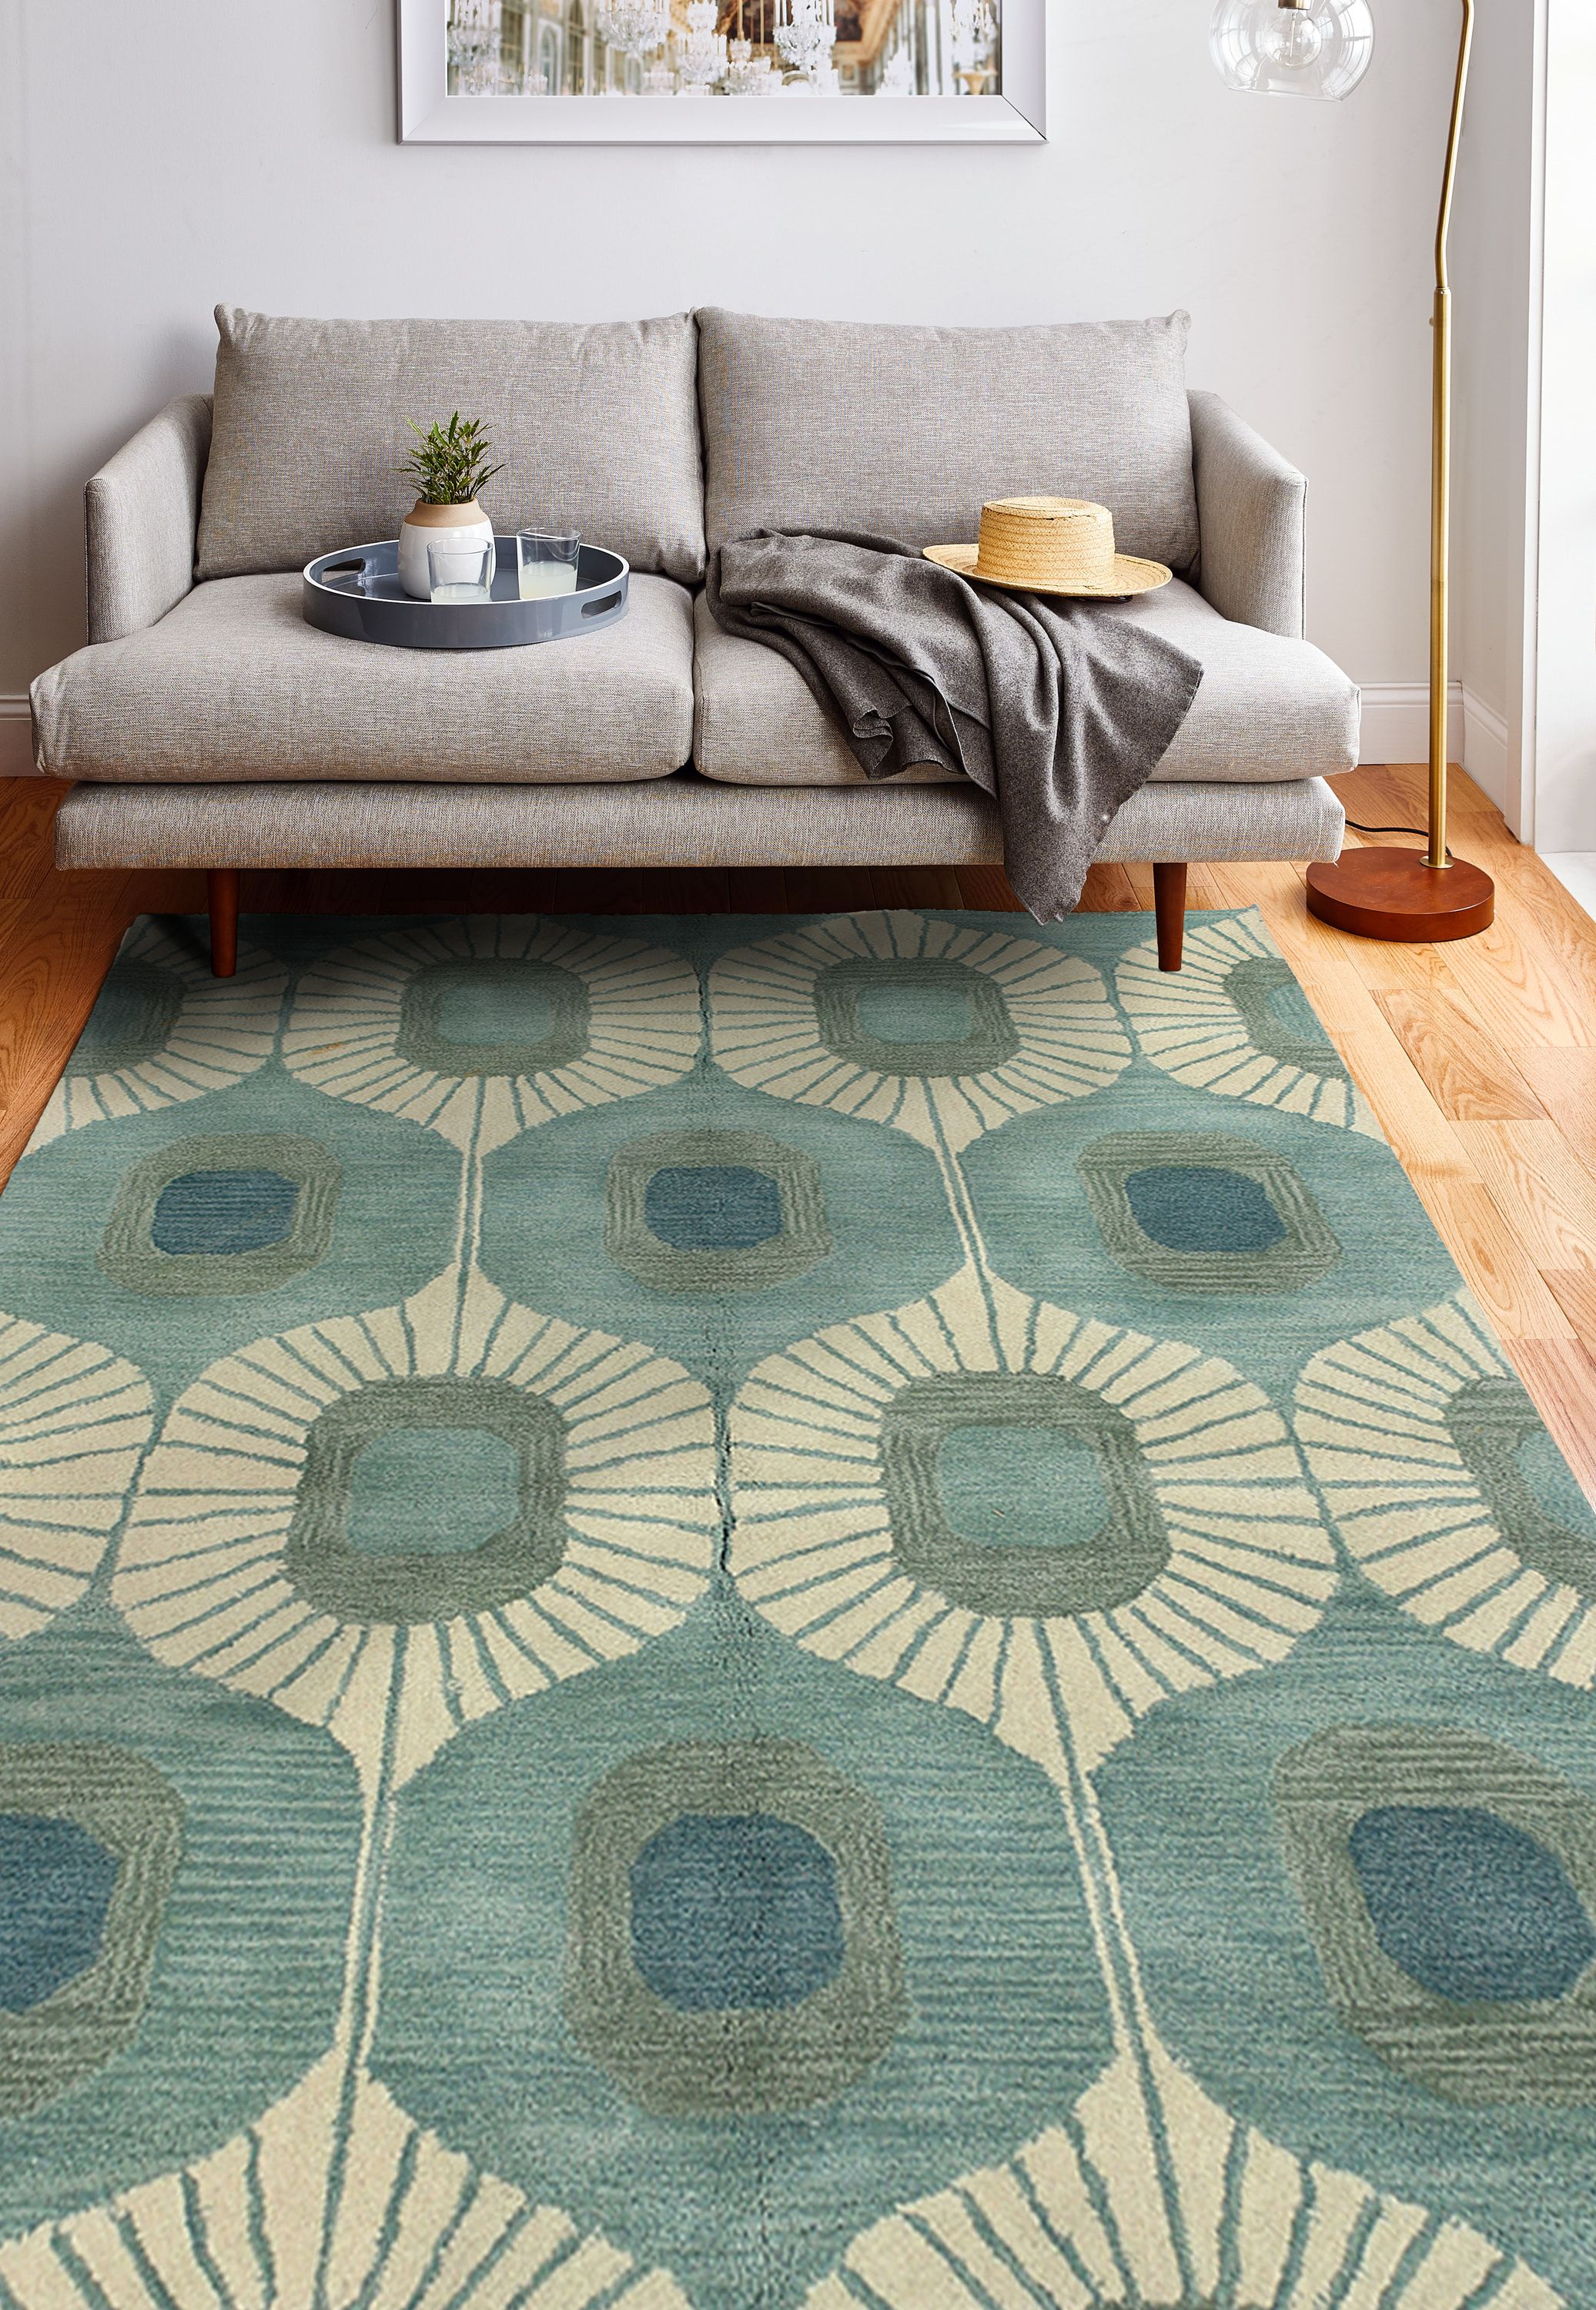 Brighten Your Living Room With The Woodbridge Are Rug From Bashian S Chelsea Collection M Rugs In Living Room Mid Century Modern Rugs Living Room Decor Modern